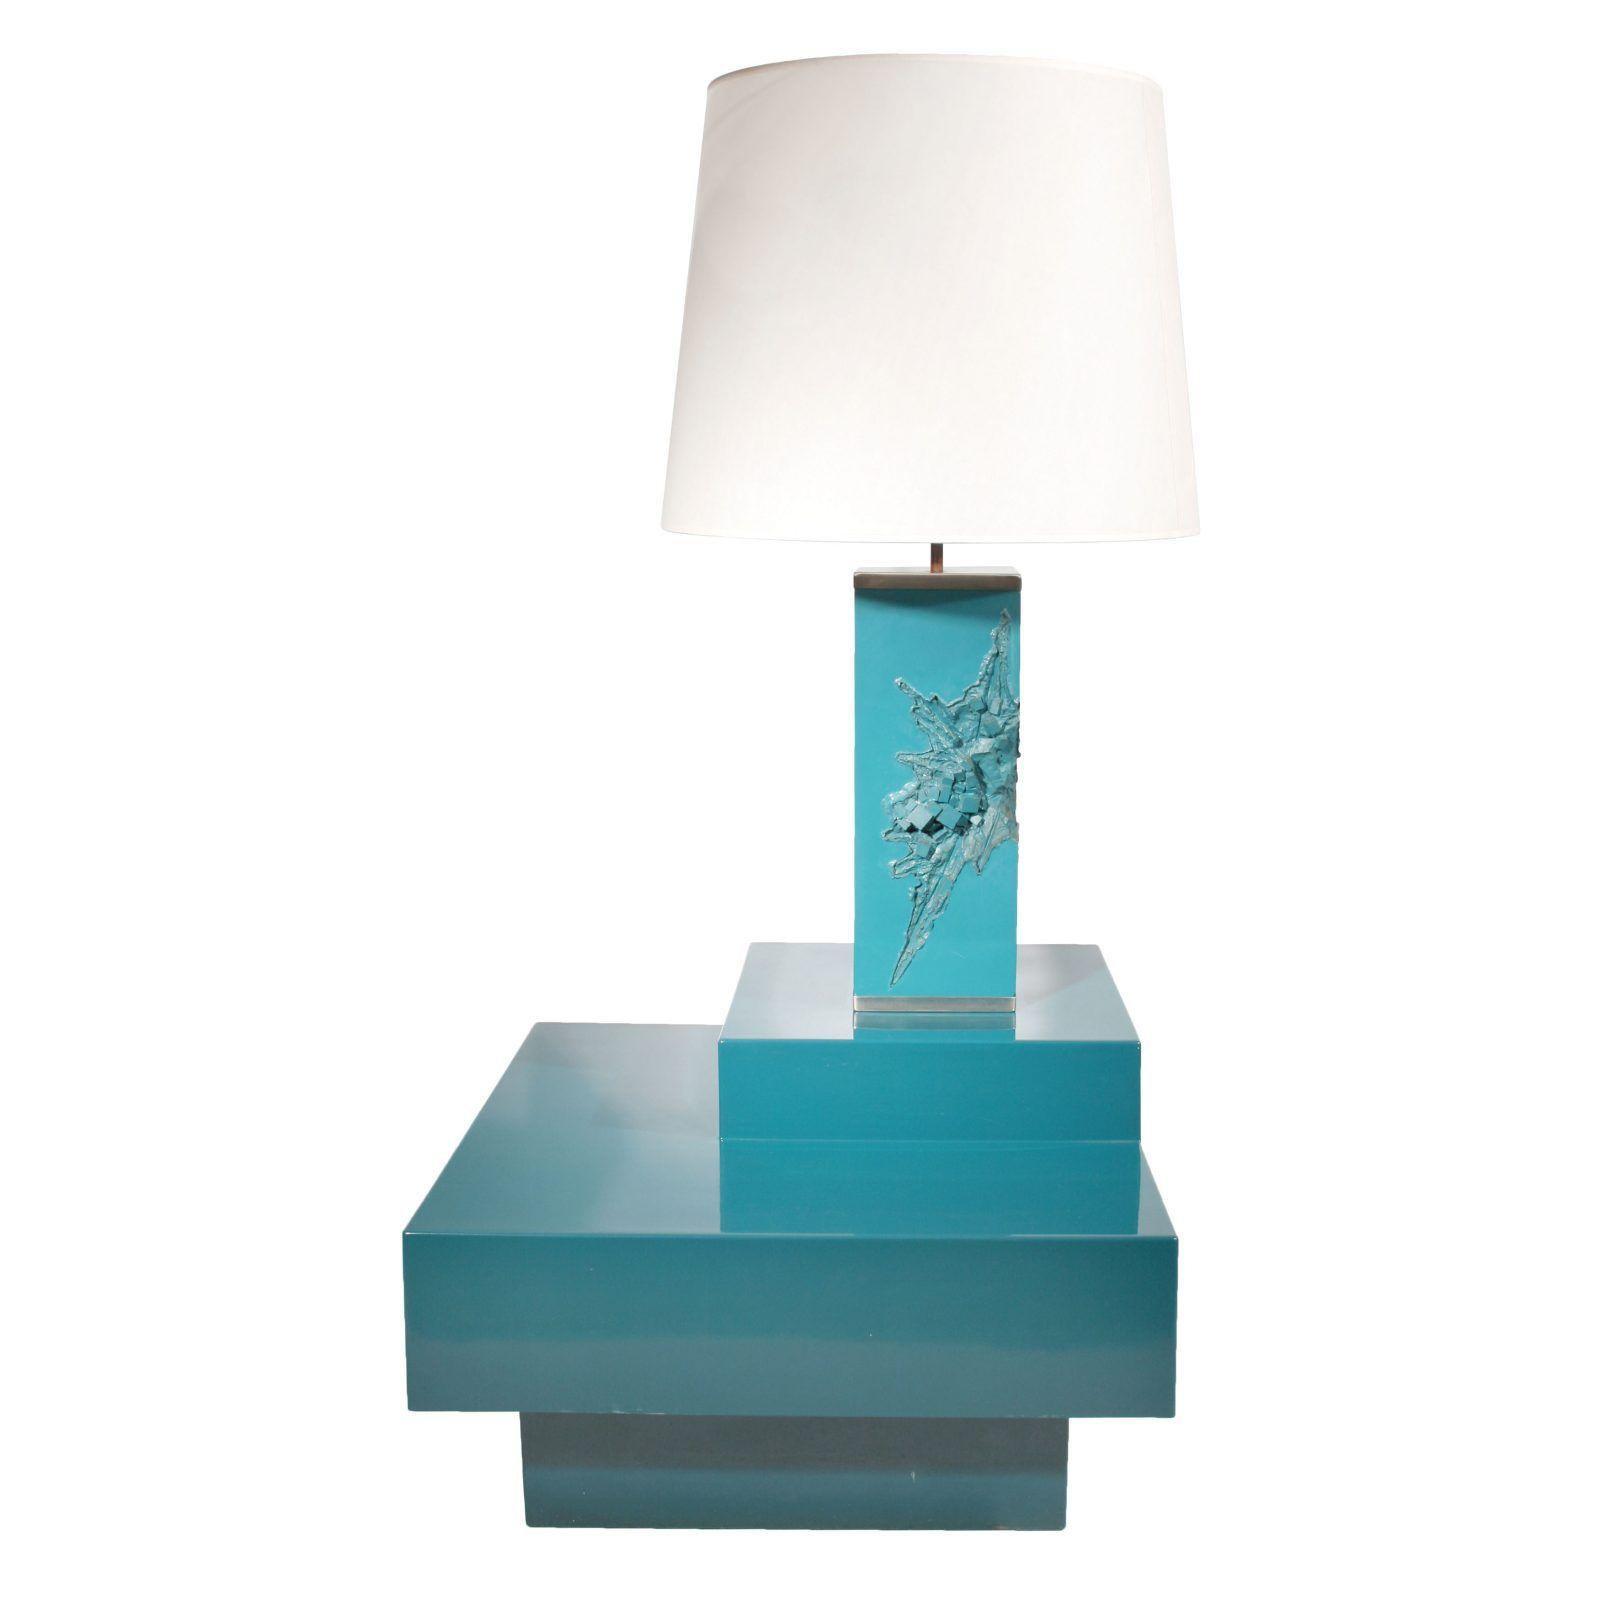 Maison Charles Teal Lacquered Corner Table And Lamp France Circa 1960s Todd Merrill Lamp Corner Table